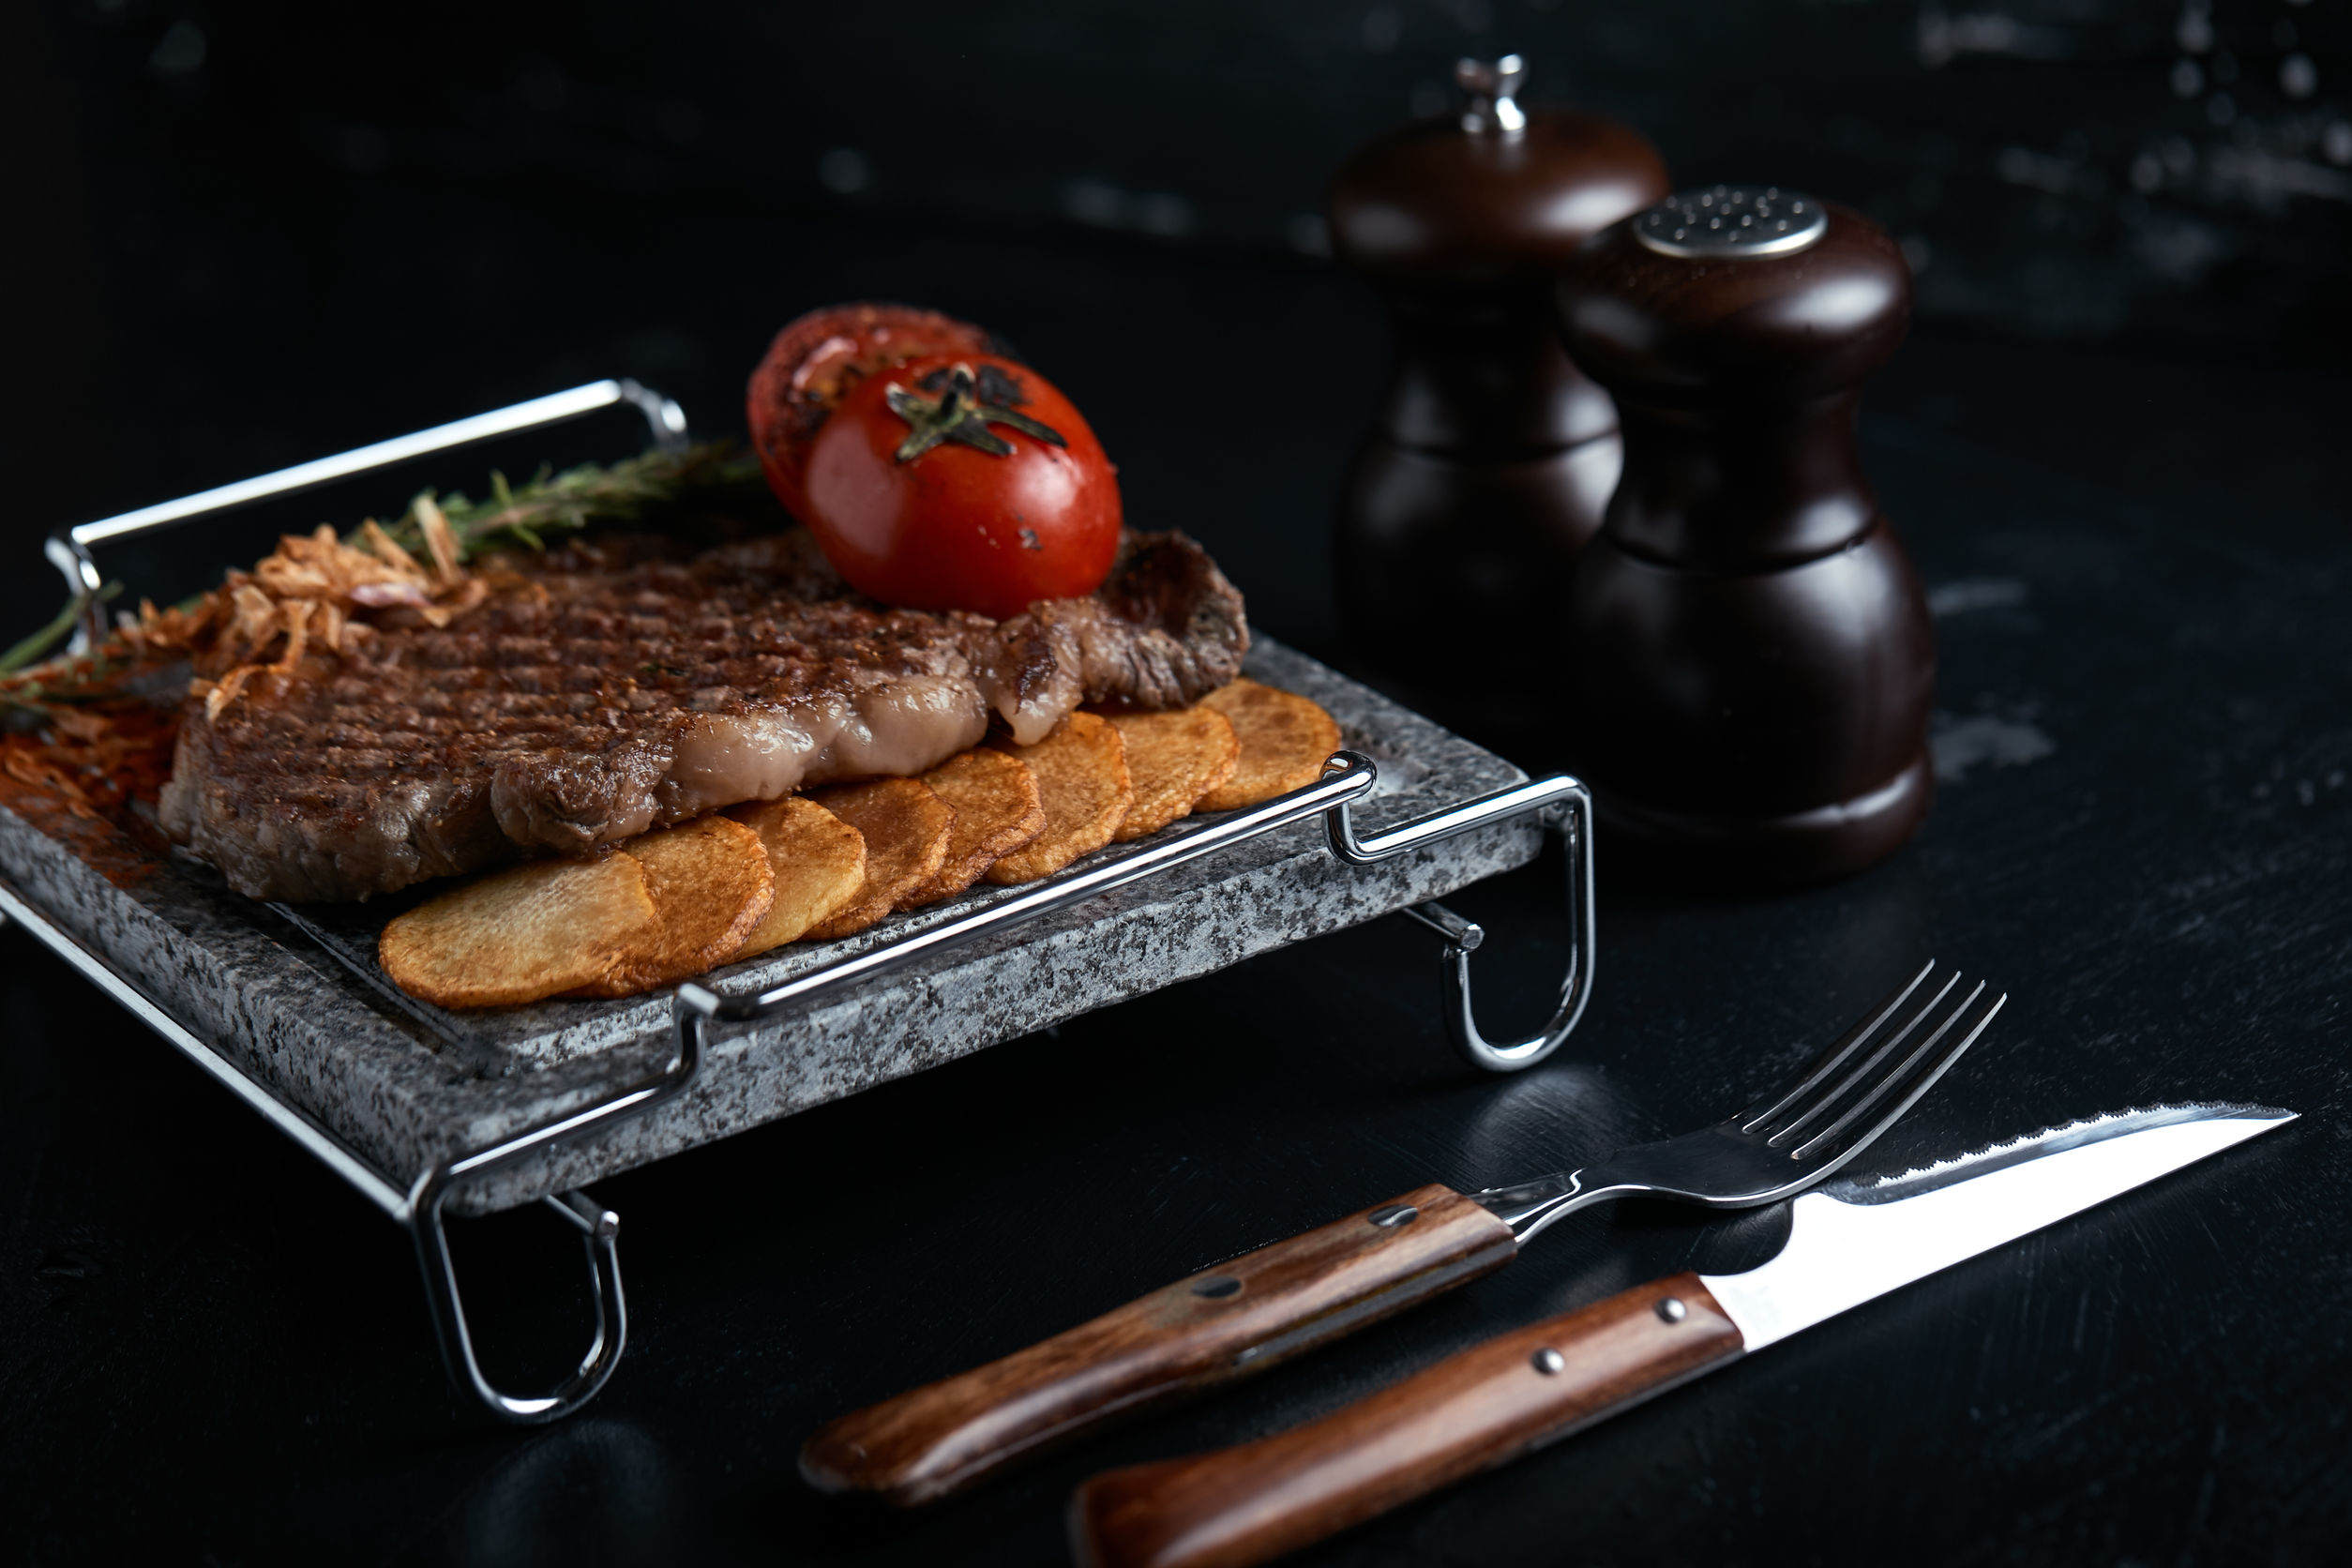 Grilled steak with knife and fork carved on black stone slate. Steak on a hot marble stone. Copy space, dark background, food fashion photo